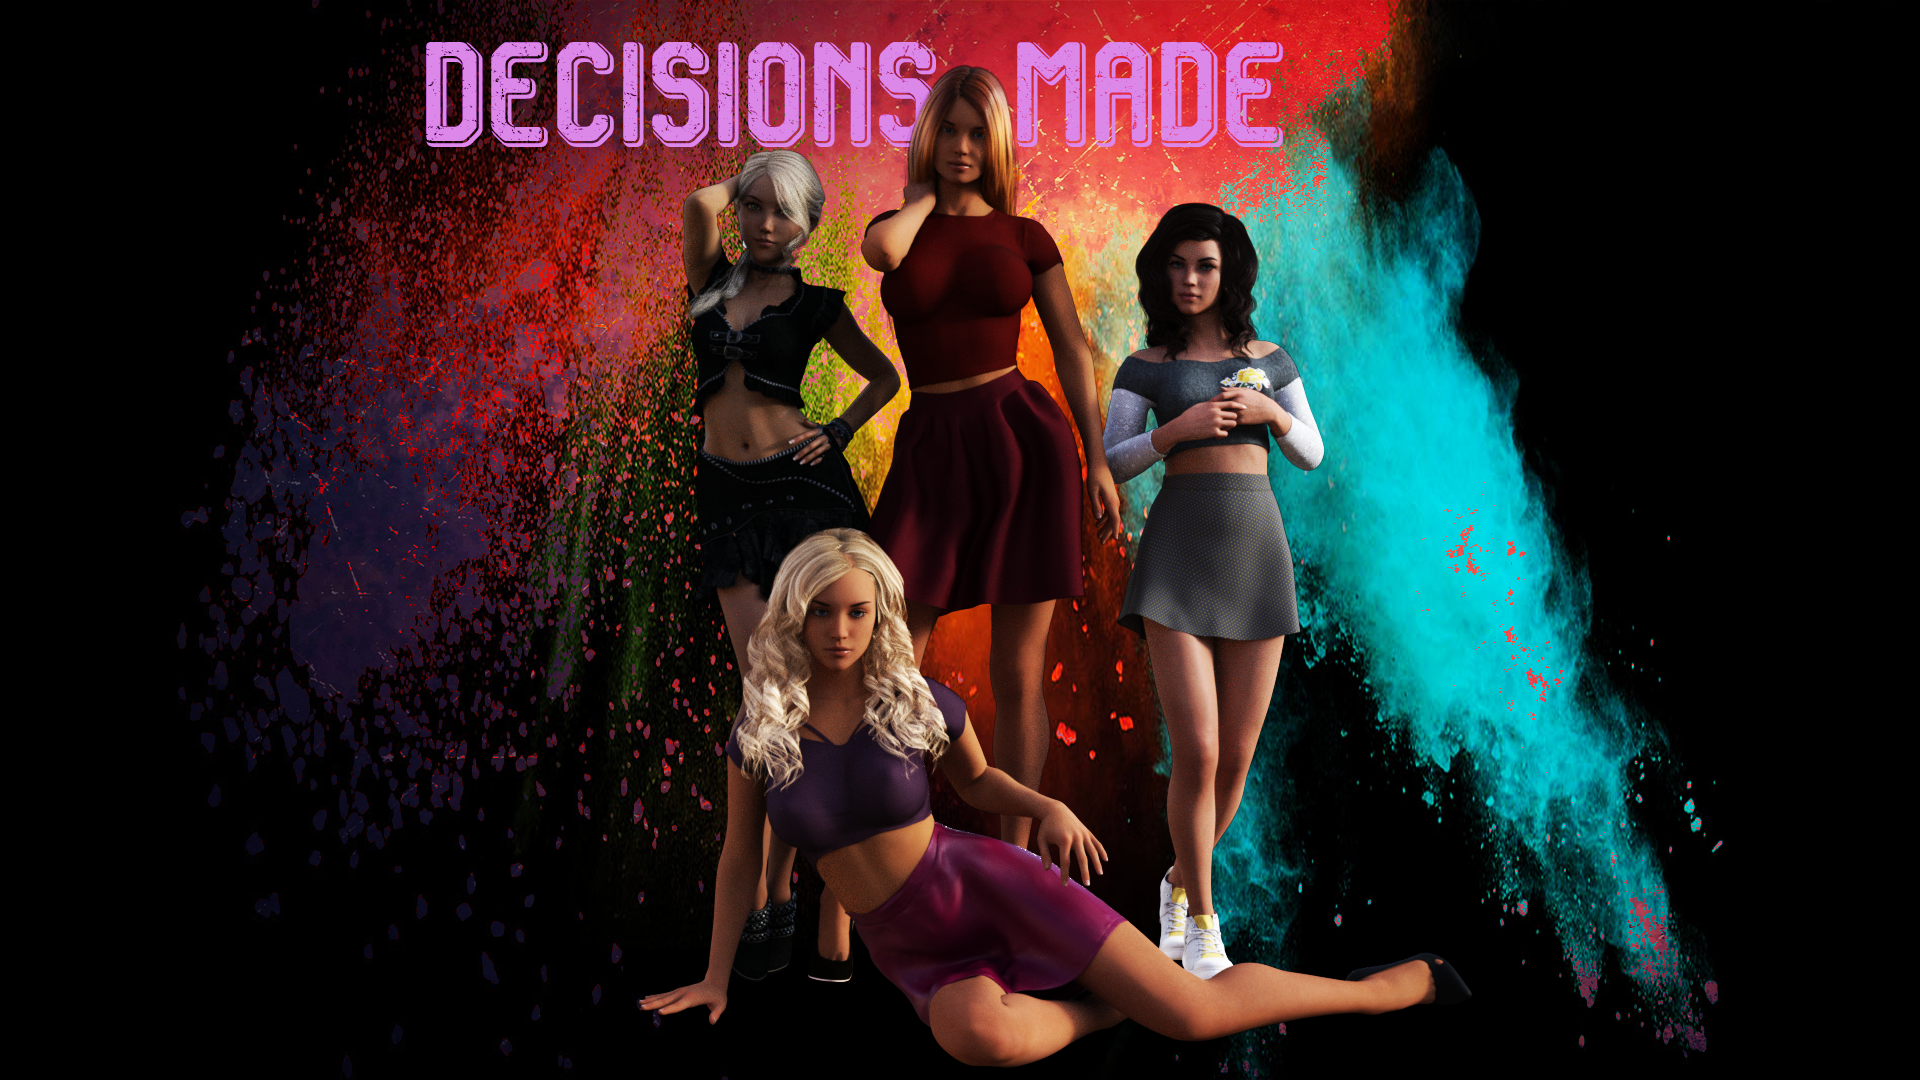 Decisions Made poster